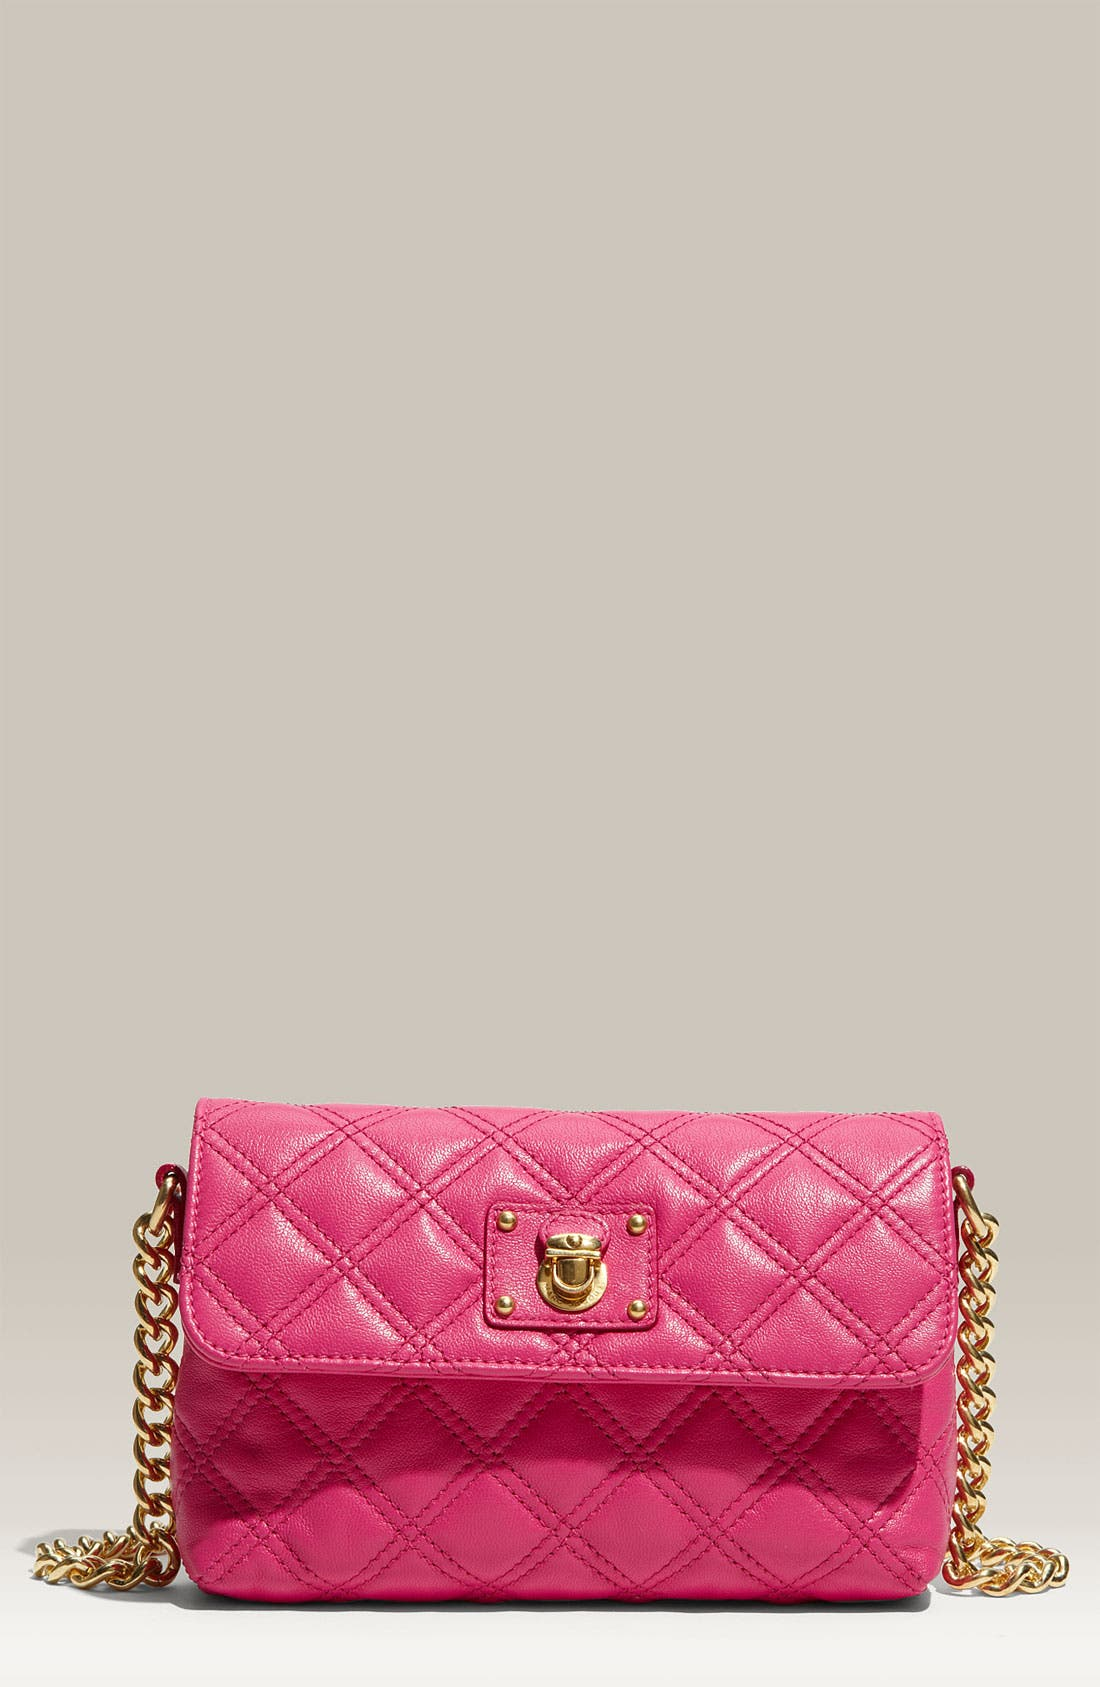 Main Image - MARC JACOBS 'The Single' Quilted Crossbody Bag